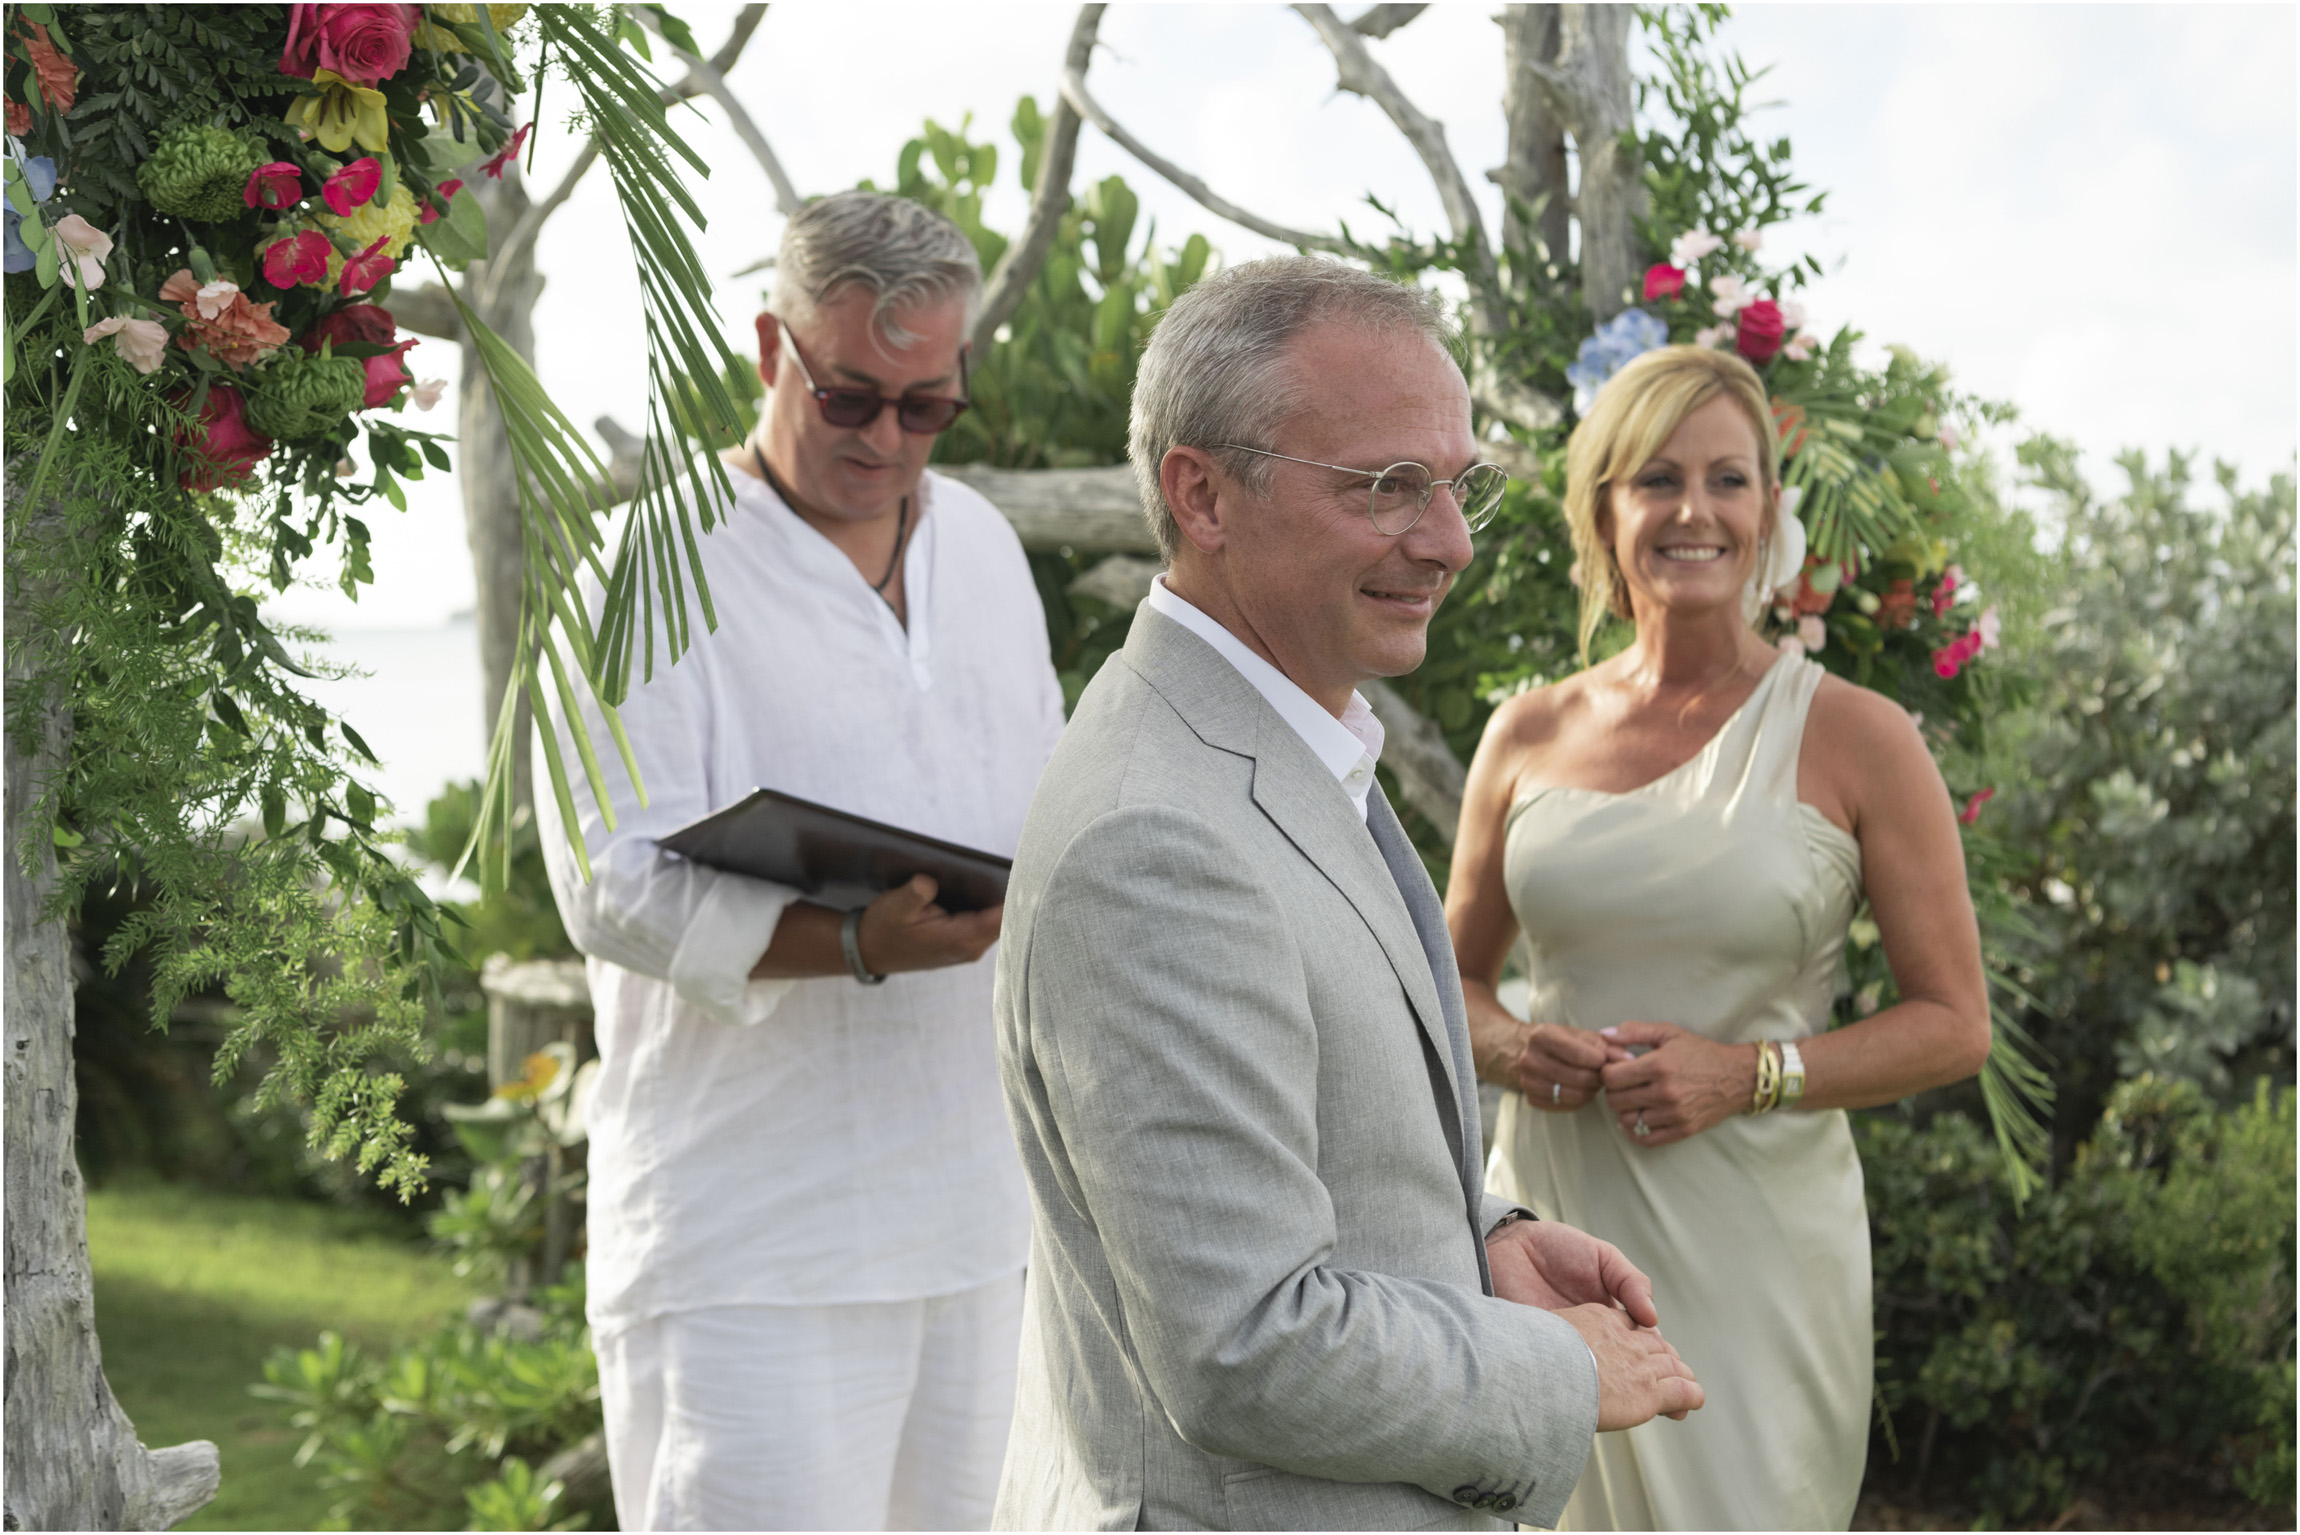 ©FianderFoto_Bermuda_Wedding_Photographer_Long_Island_Bermuda_Nancy_Ray_063.jpg